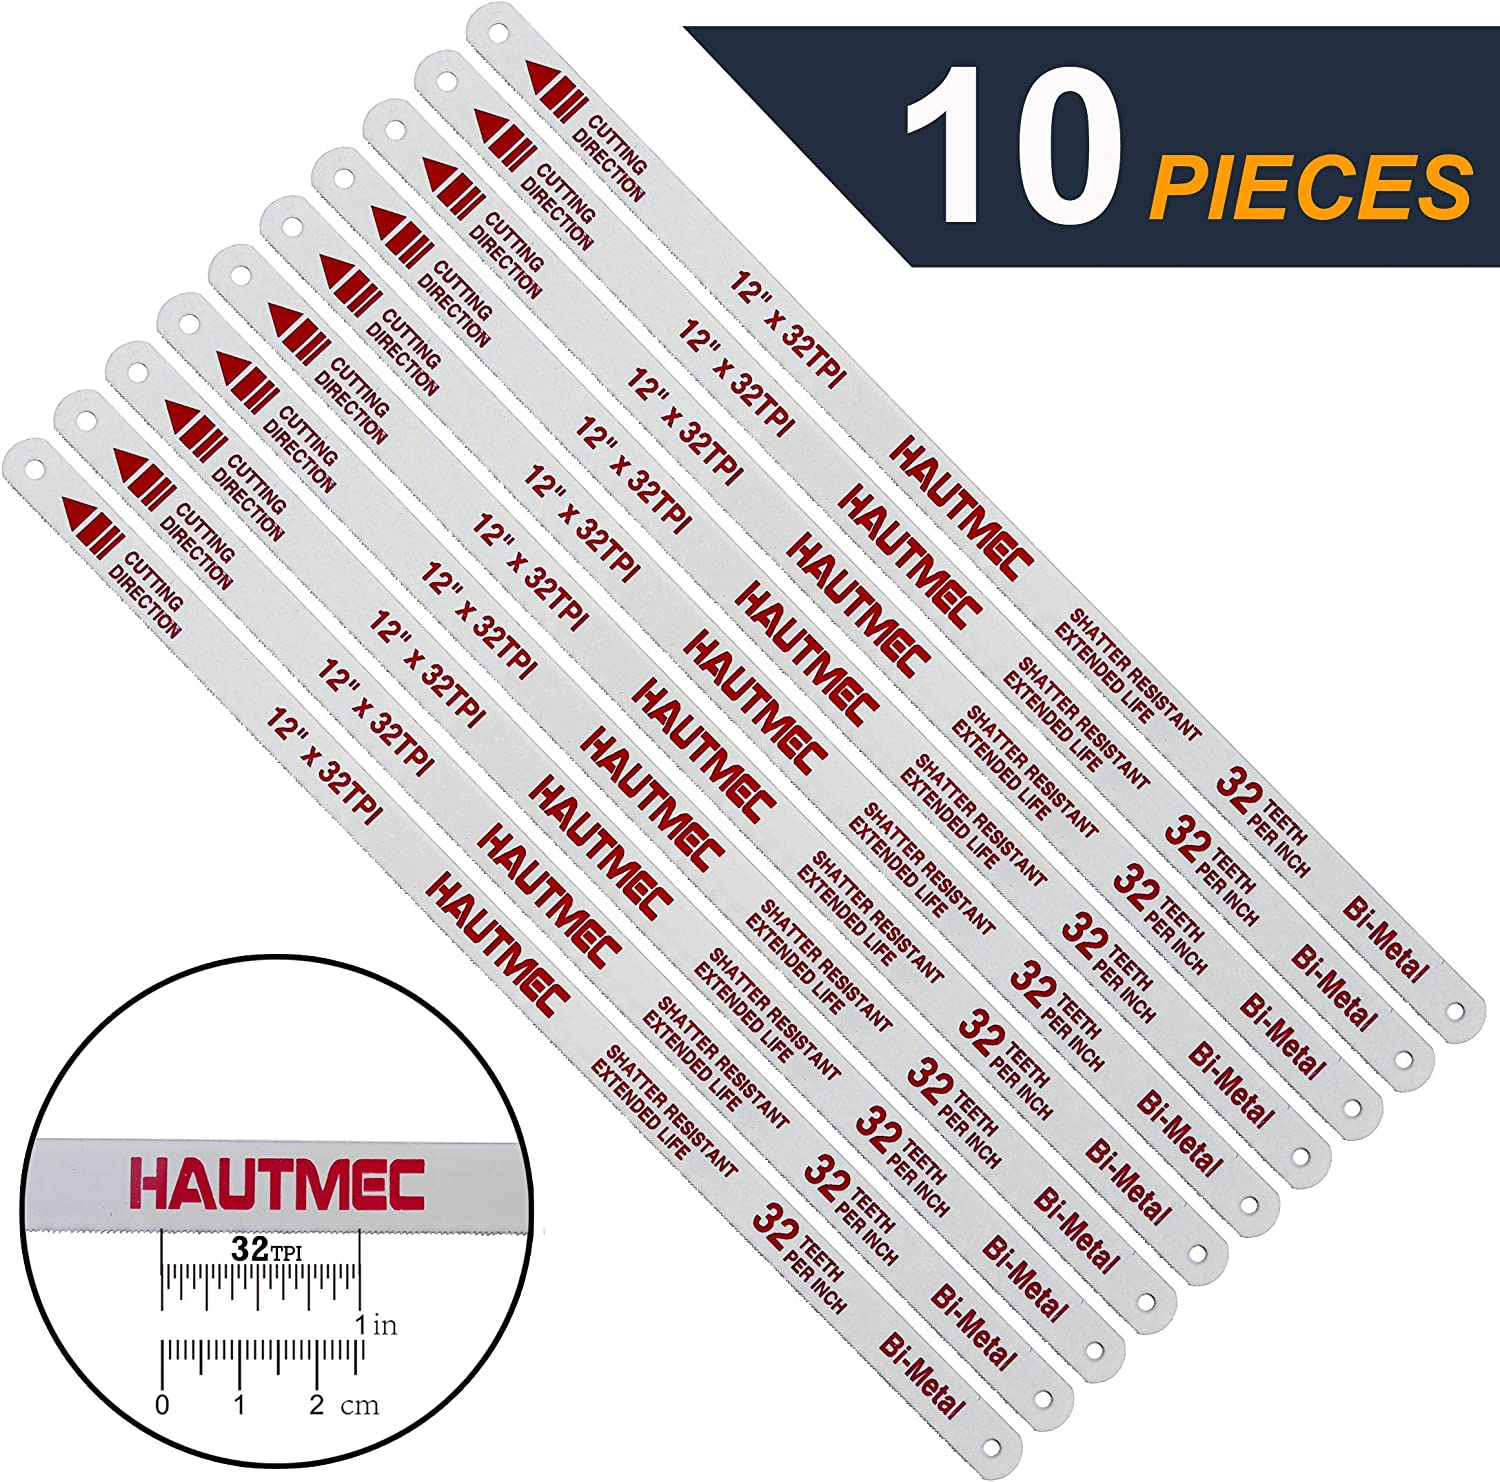 "HAUTMEC Hacksaw Replacement Blades BI-METAL (10 Pack) High Speed Steel Grounded Teeth 32 TPI x 12"" Length 0.025"" Thick x 1/2"" Width HT0018-CT"